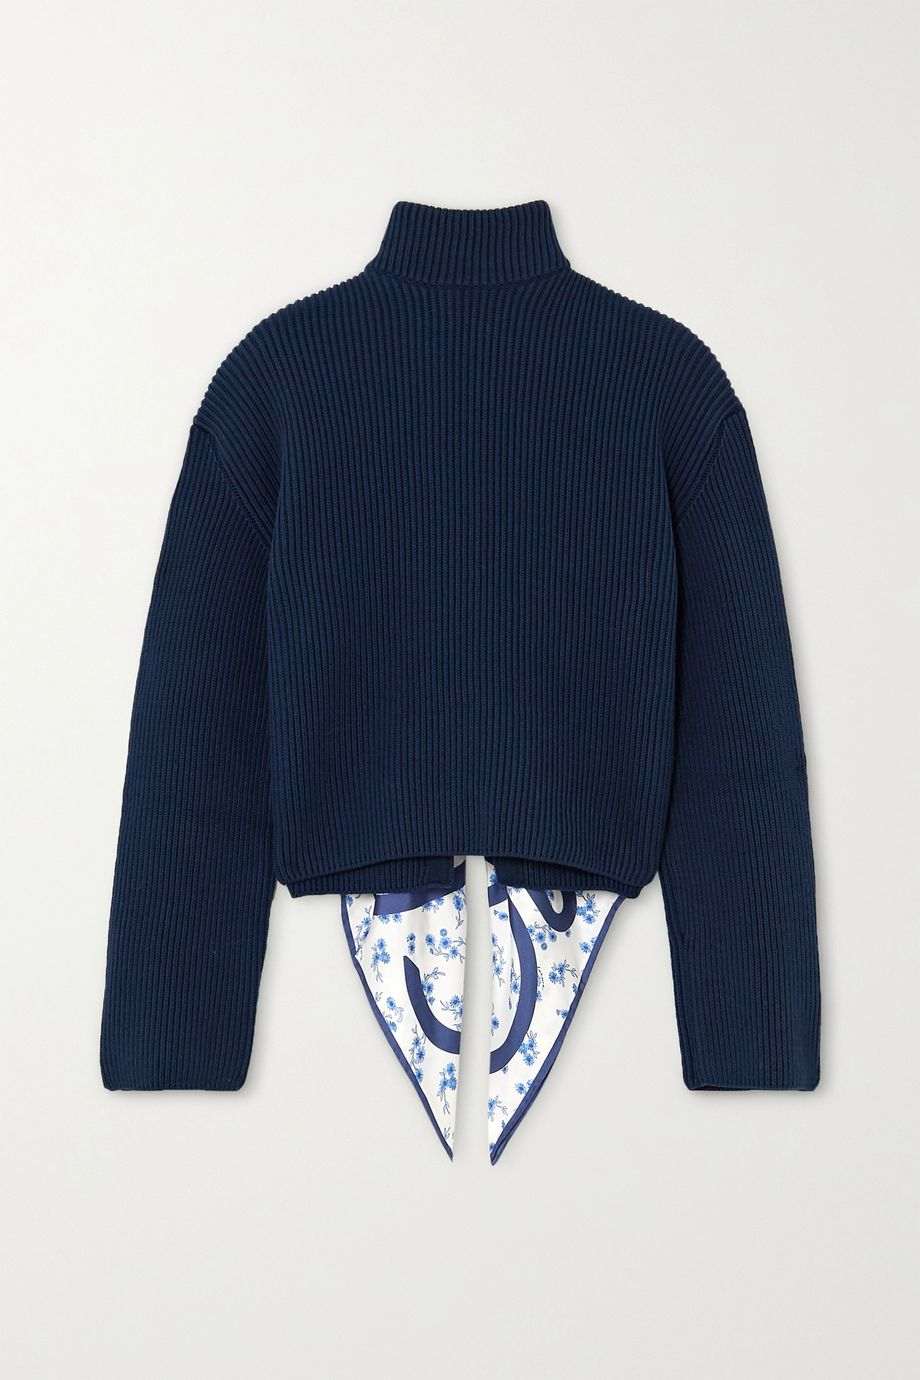 Loewe Open-back ribbed cotton and printed silk-twill sweater